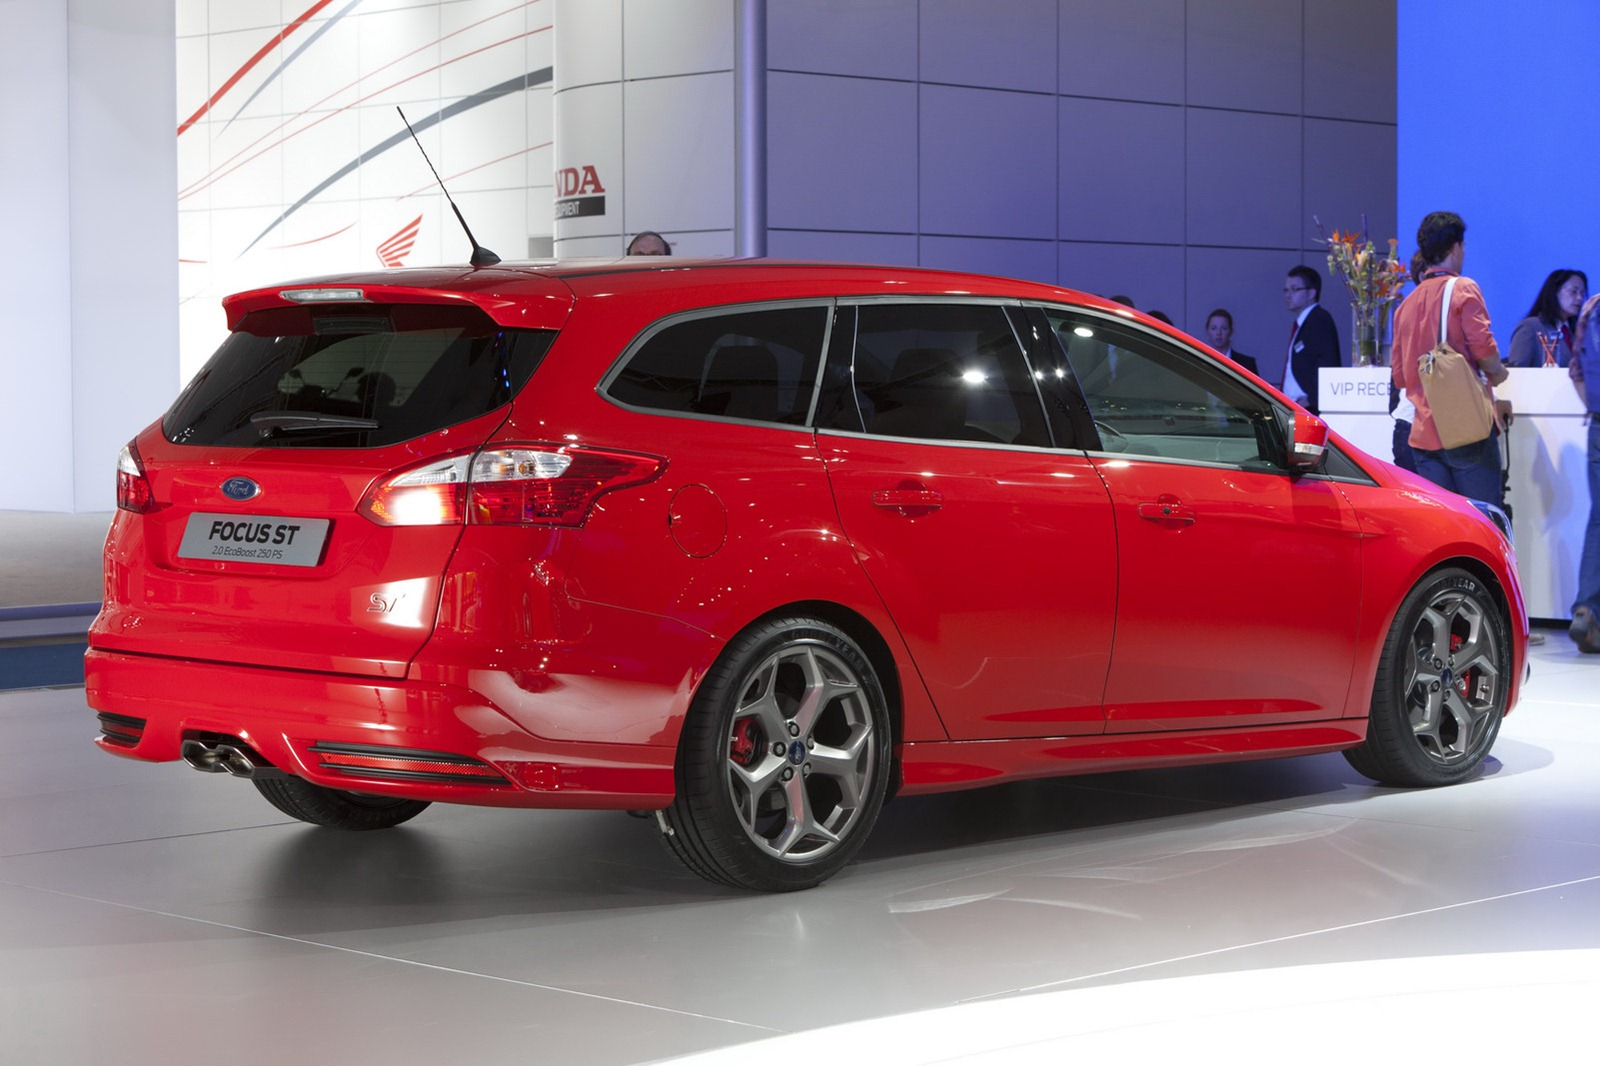 2013 ford focus st on sale in the uk priced from 21 995. Black Bedroom Furniture Sets. Home Design Ideas